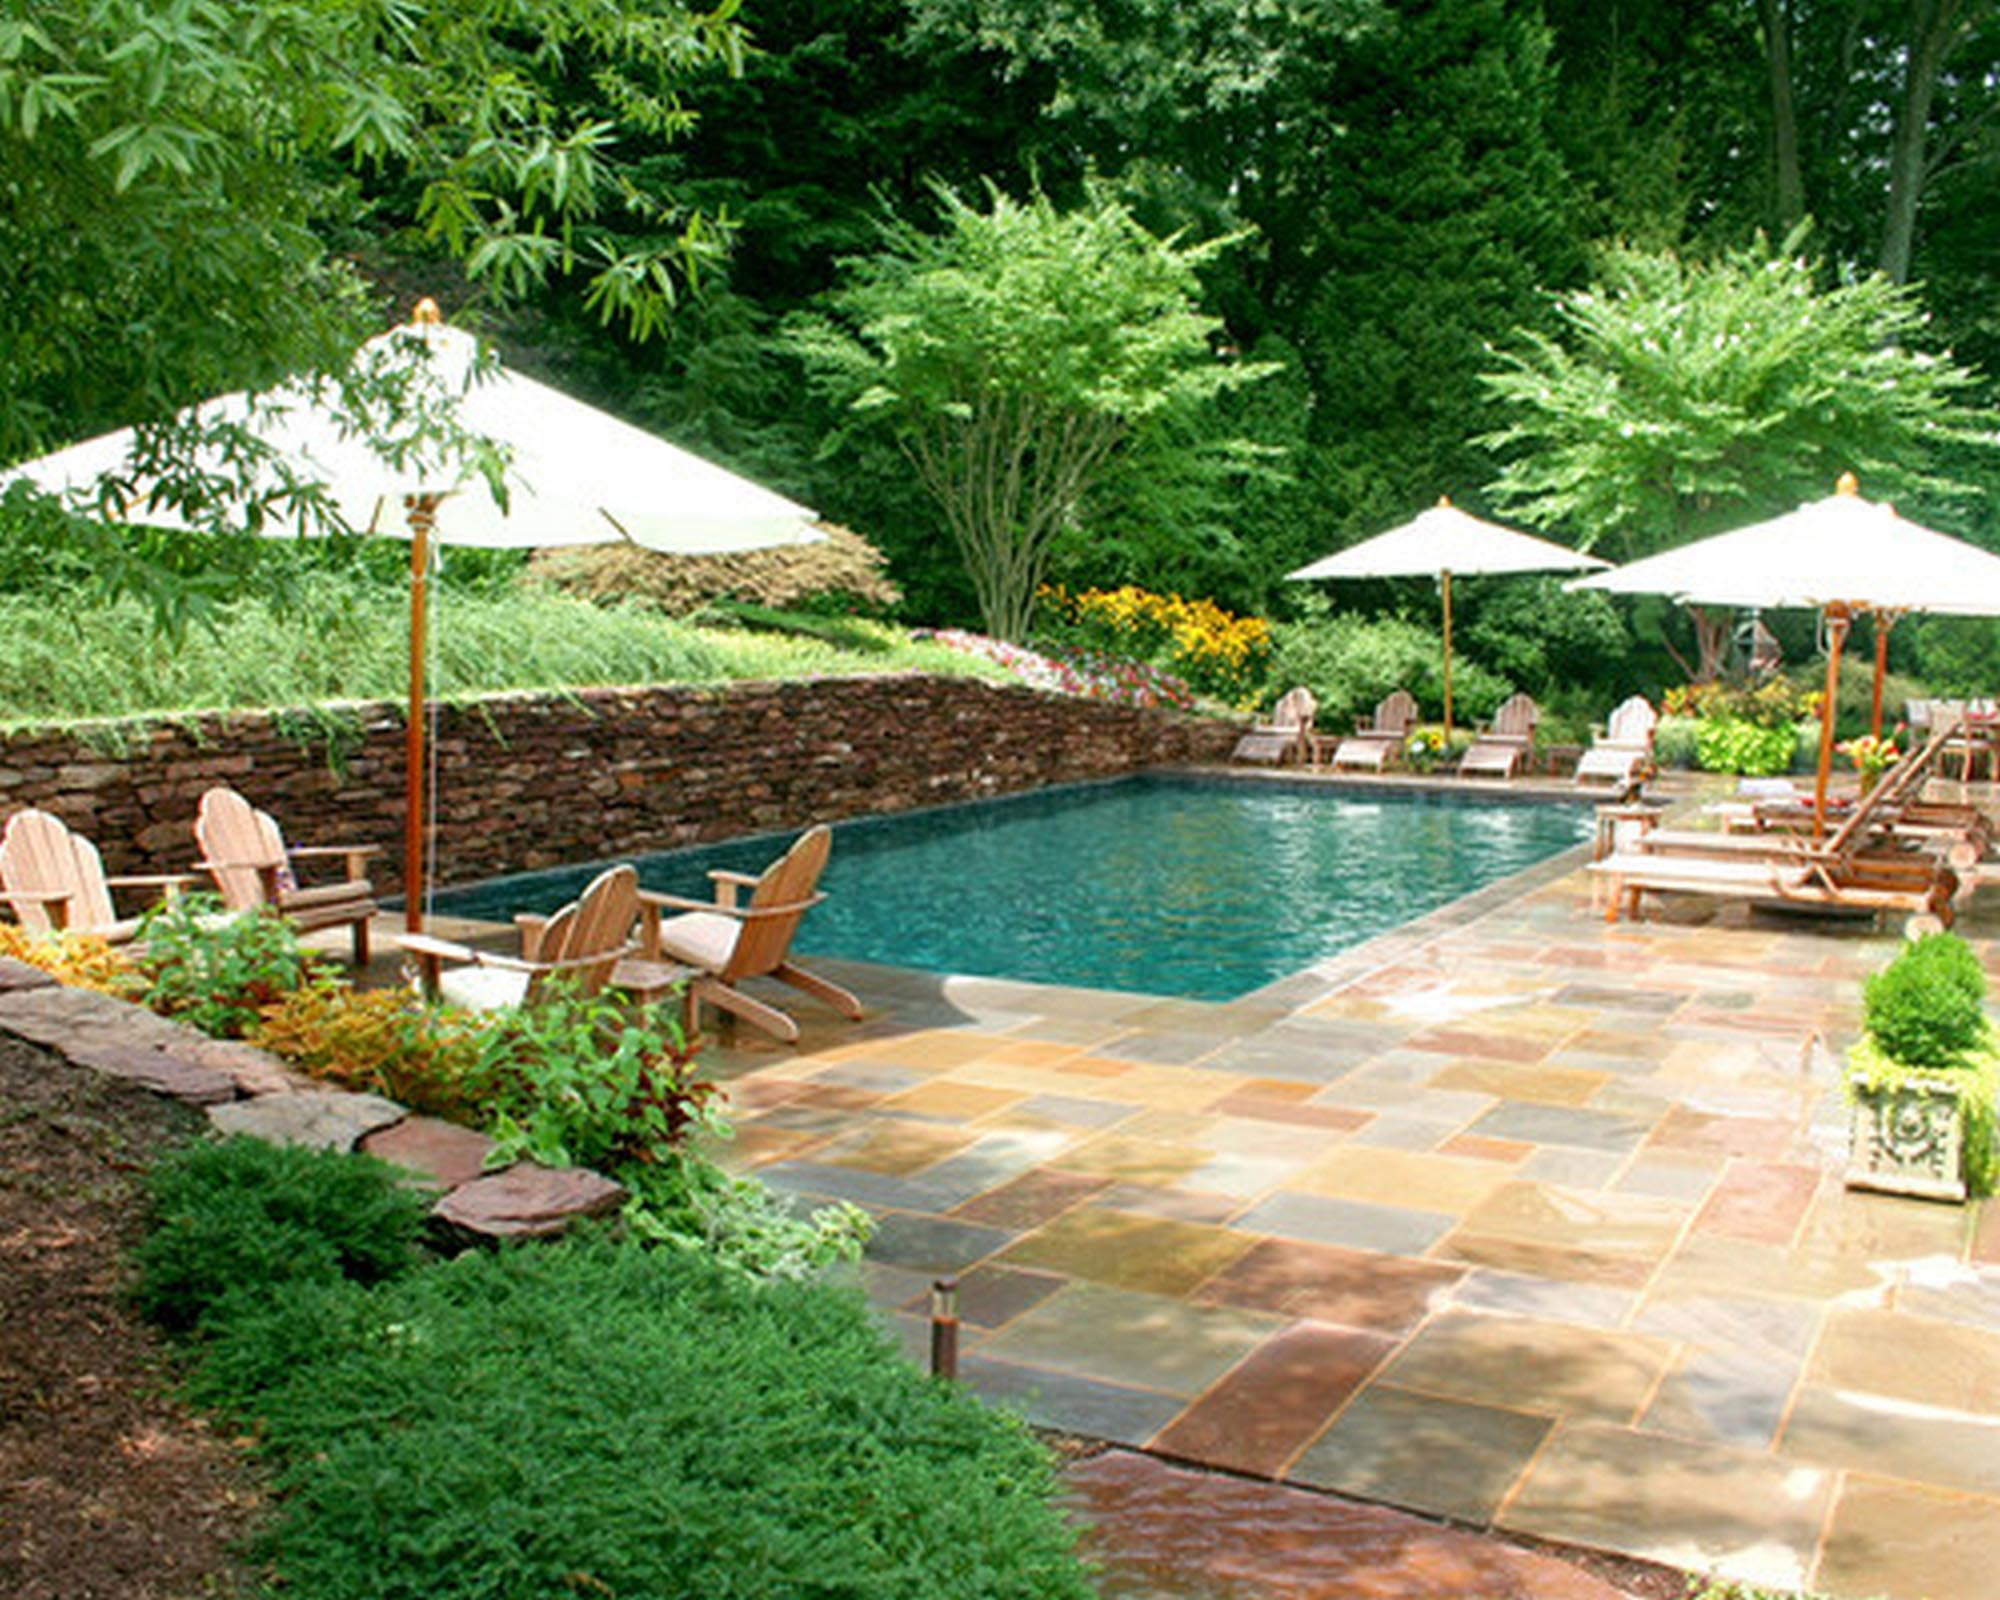 pools tool with swimming pool killer house backyard design with curve